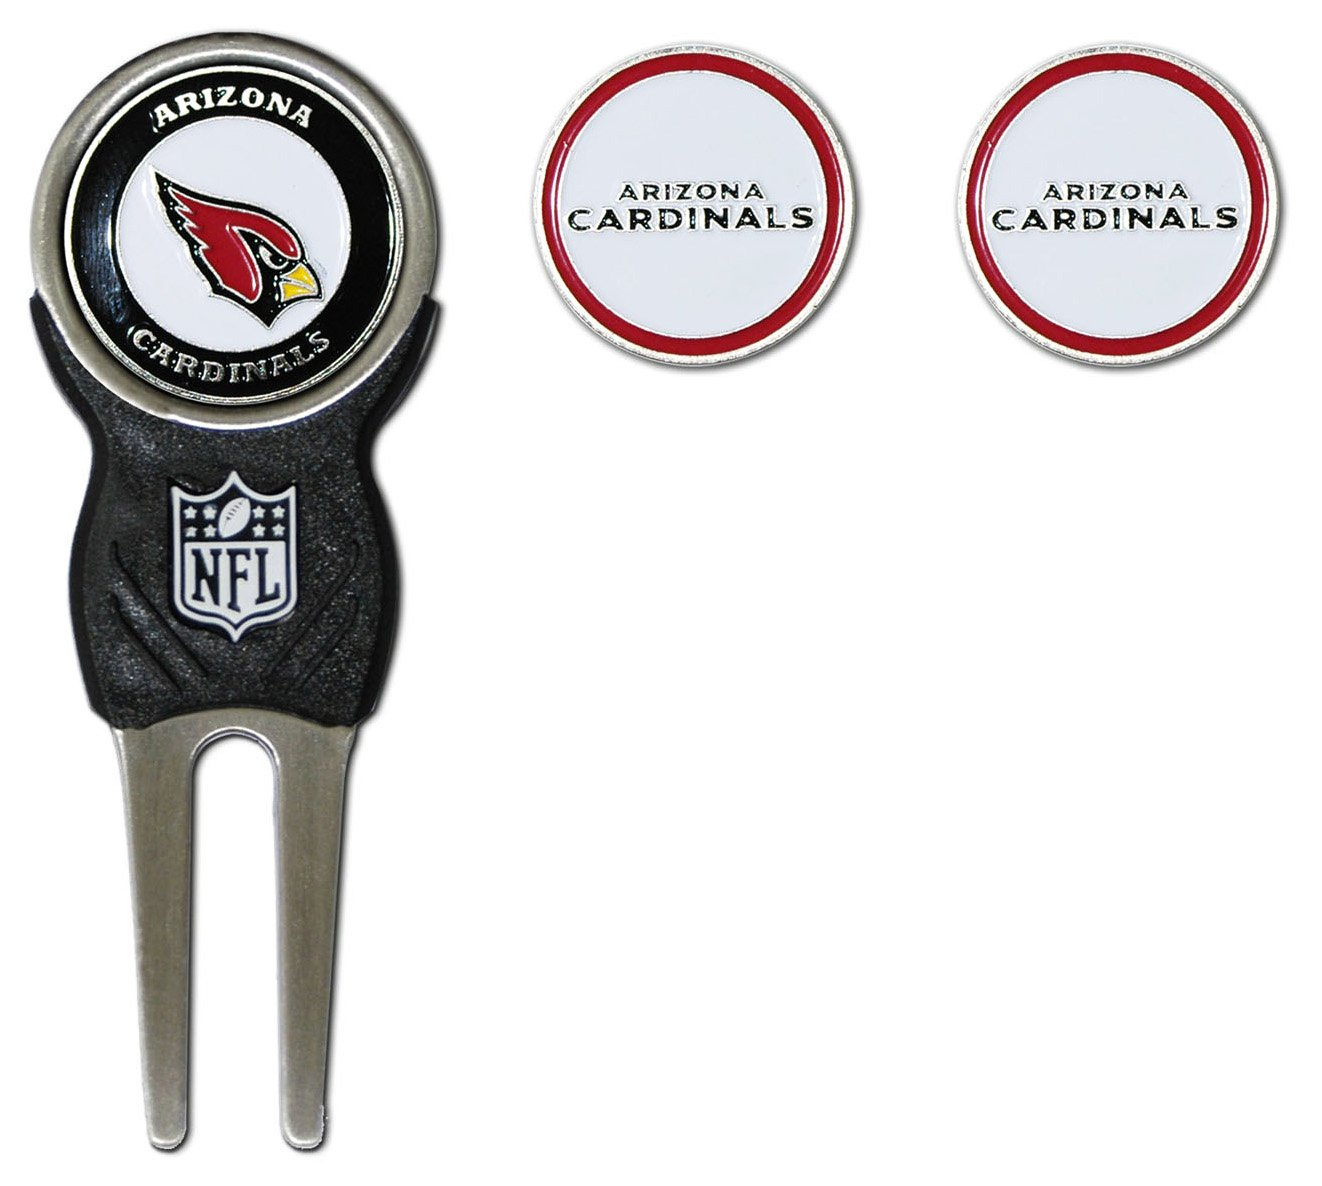 Team Golf NFL Arizona Cardinals Divot Tool with 3 Golf Ball Markers Pack, Markers are Removable Magnetic Double-Sided Enamel by Team Golf